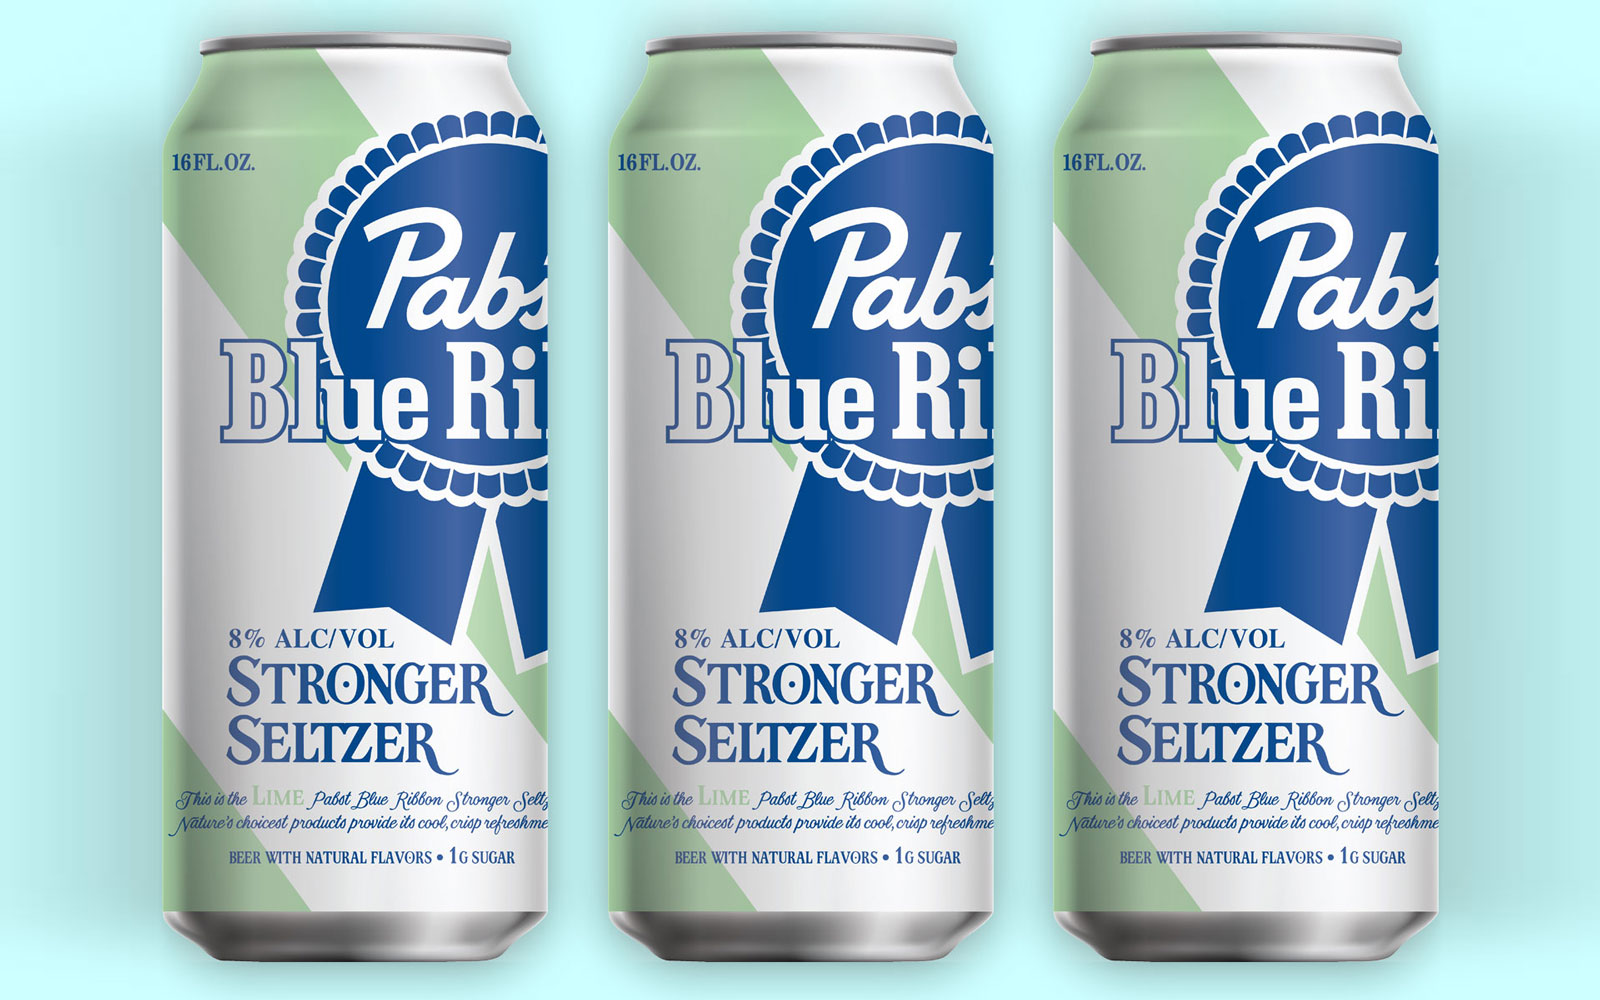 PBR's New Hard Seltzer Is One of the Booziest on the Market